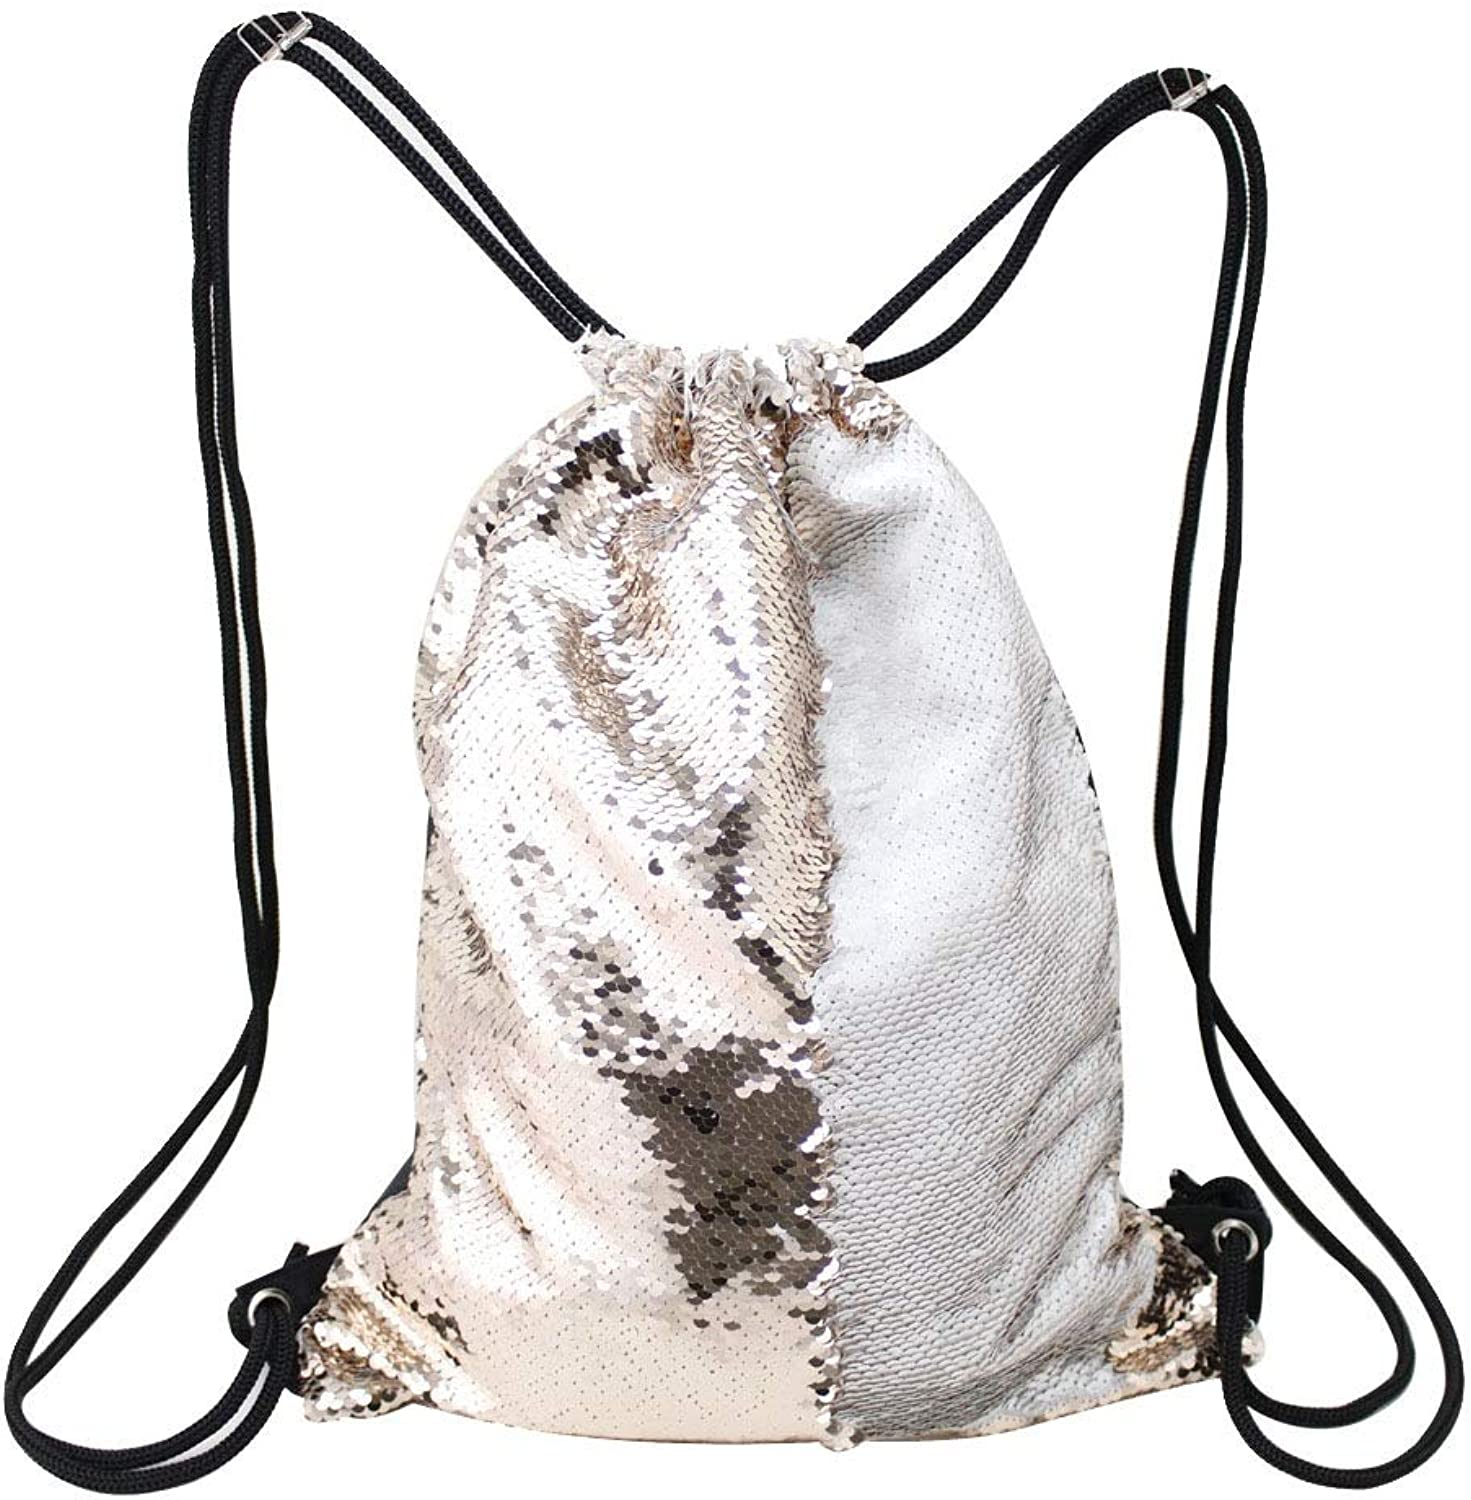 Women Backpack Purse Sequin Bag,Magic Sparkly Sequin Drawstring Backpack Glitter Sports Dance Bag Shiny Outdoor Beach Travel Backpack Backpack Shoulder Bag for Ladies (color   F, Size   One Size)